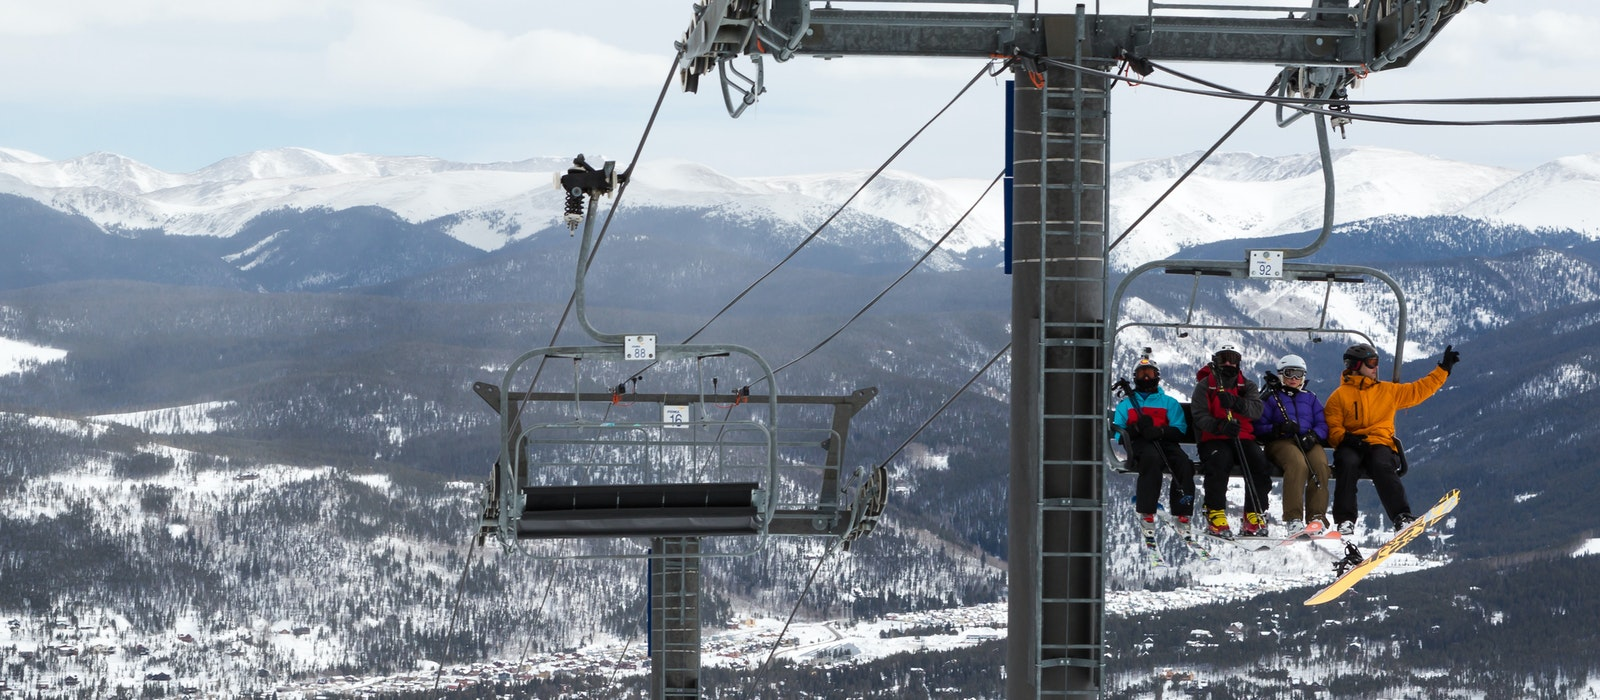 Skiiers and snowboarders ride a chairlift at Breckenridge Ski Resort in Colorado.